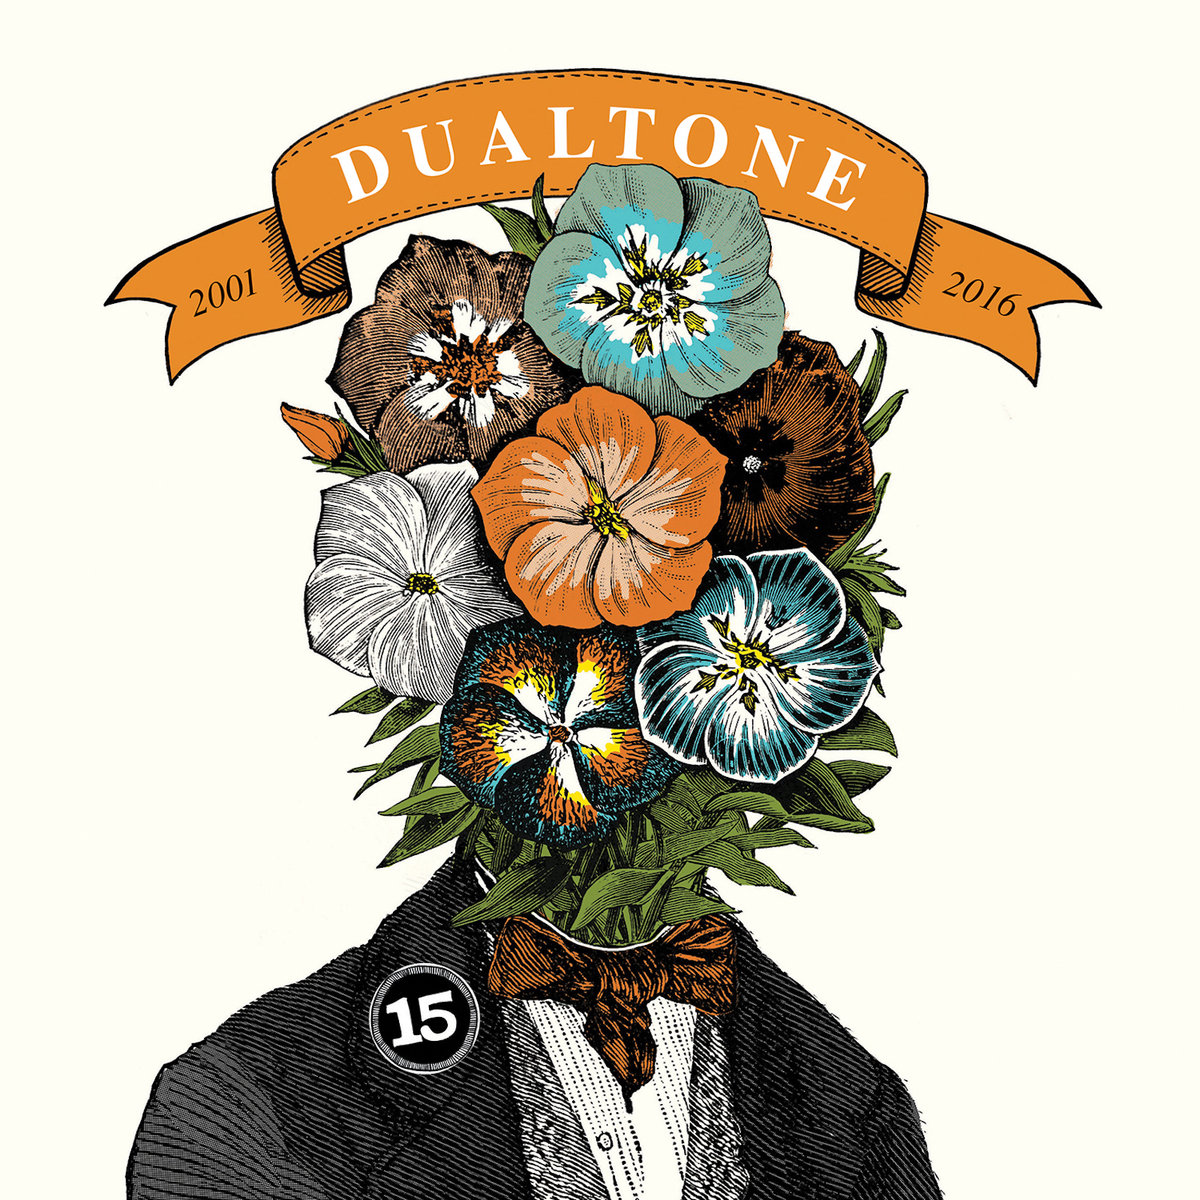 Dualtone Records Reflects on 15 Years of Music